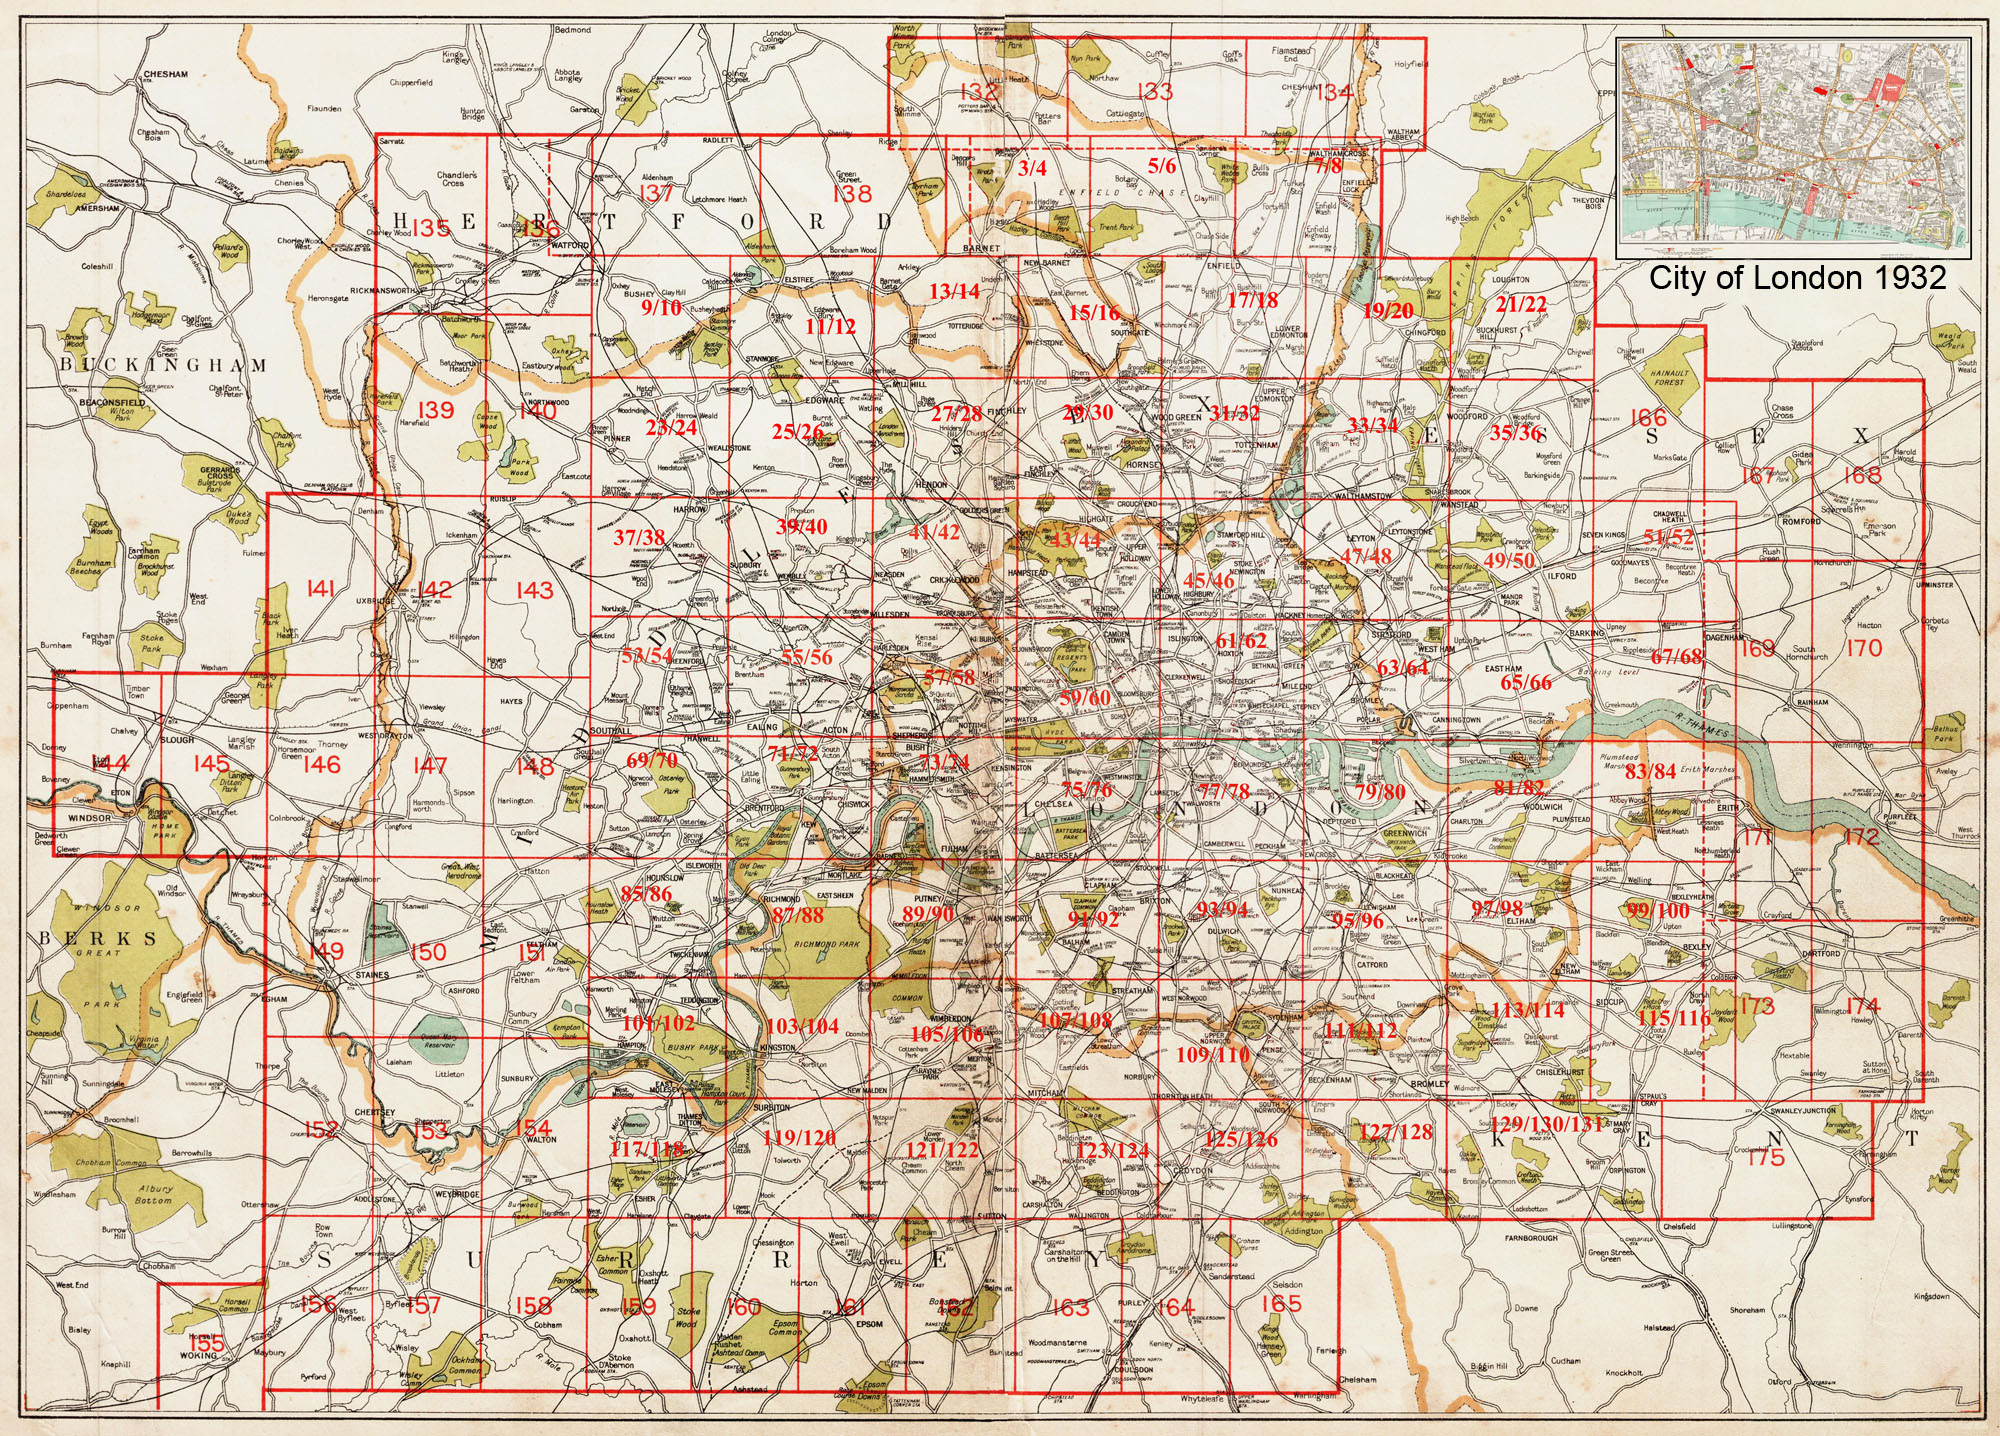 Map To London.Old Maps Of London And Greater London In 1932 As Instant Downloads